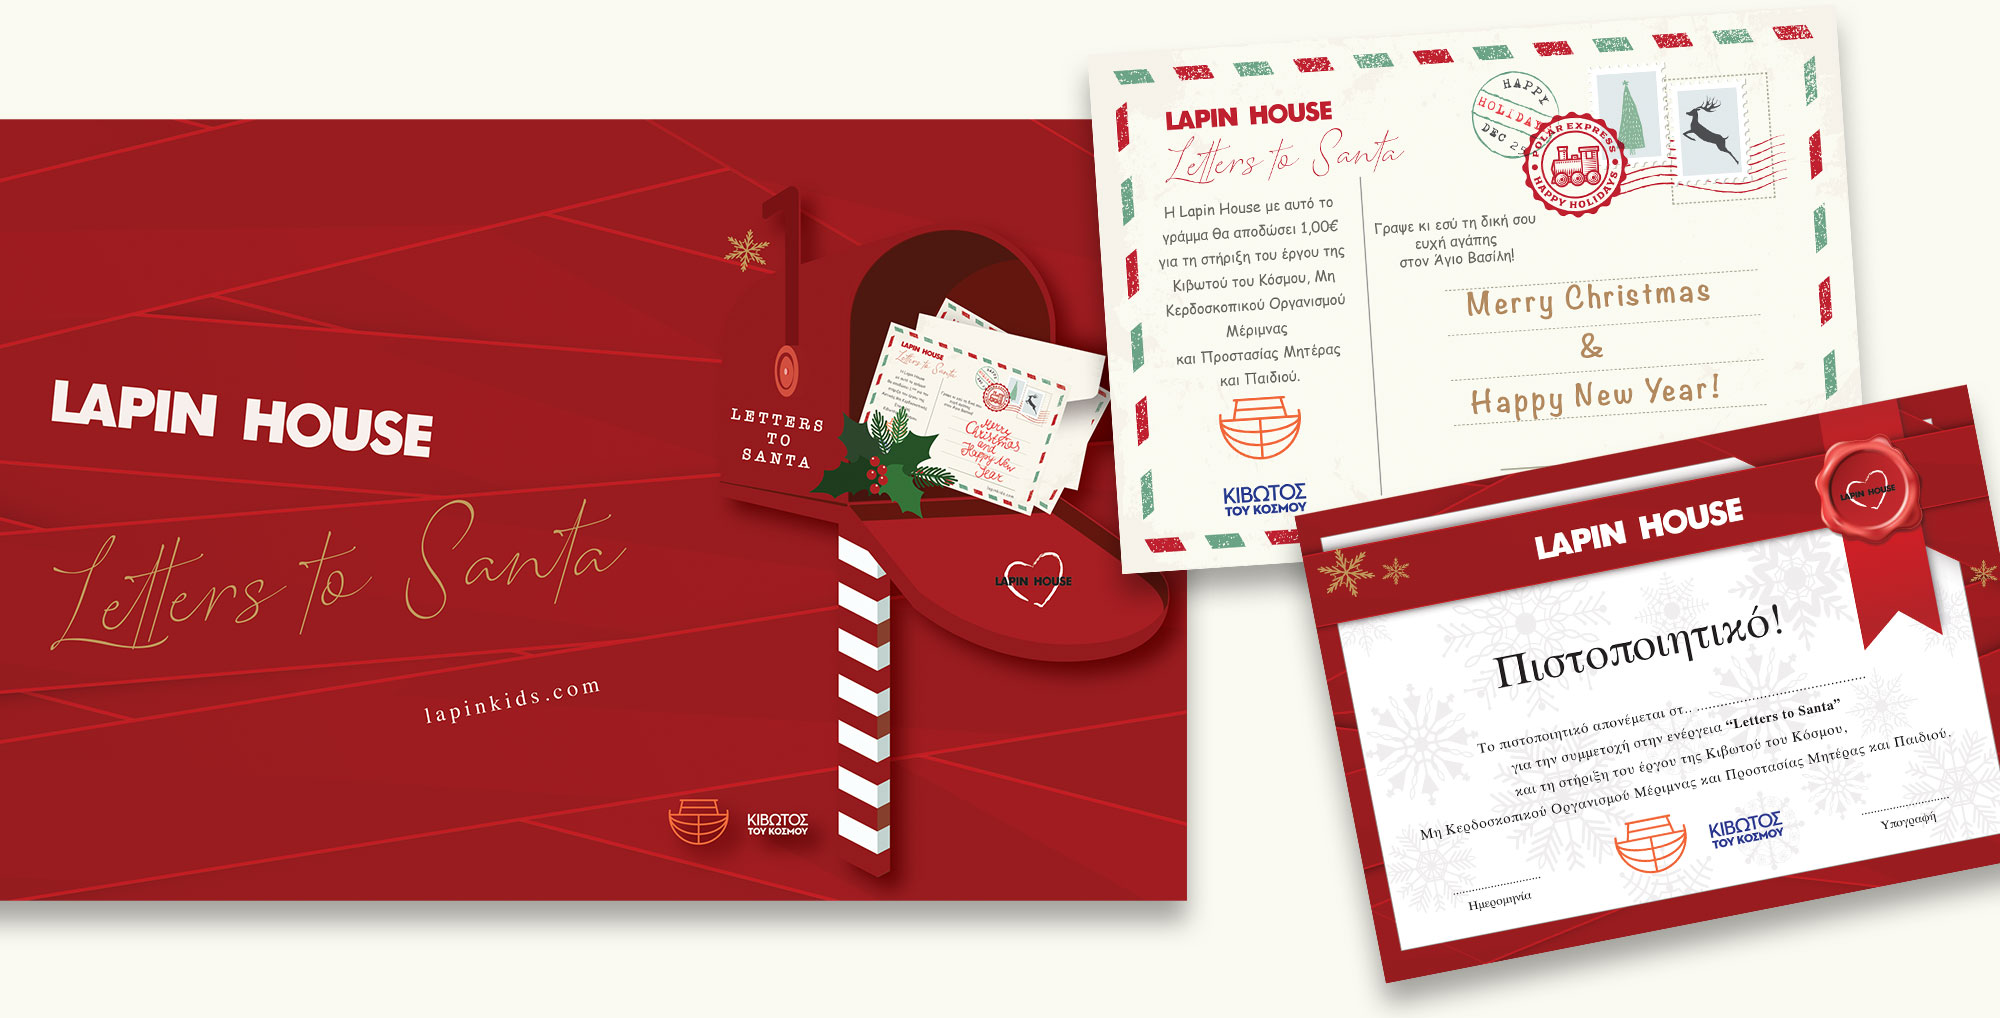 CSR Campaign: A Virtual Letter to Santa with Great Importance